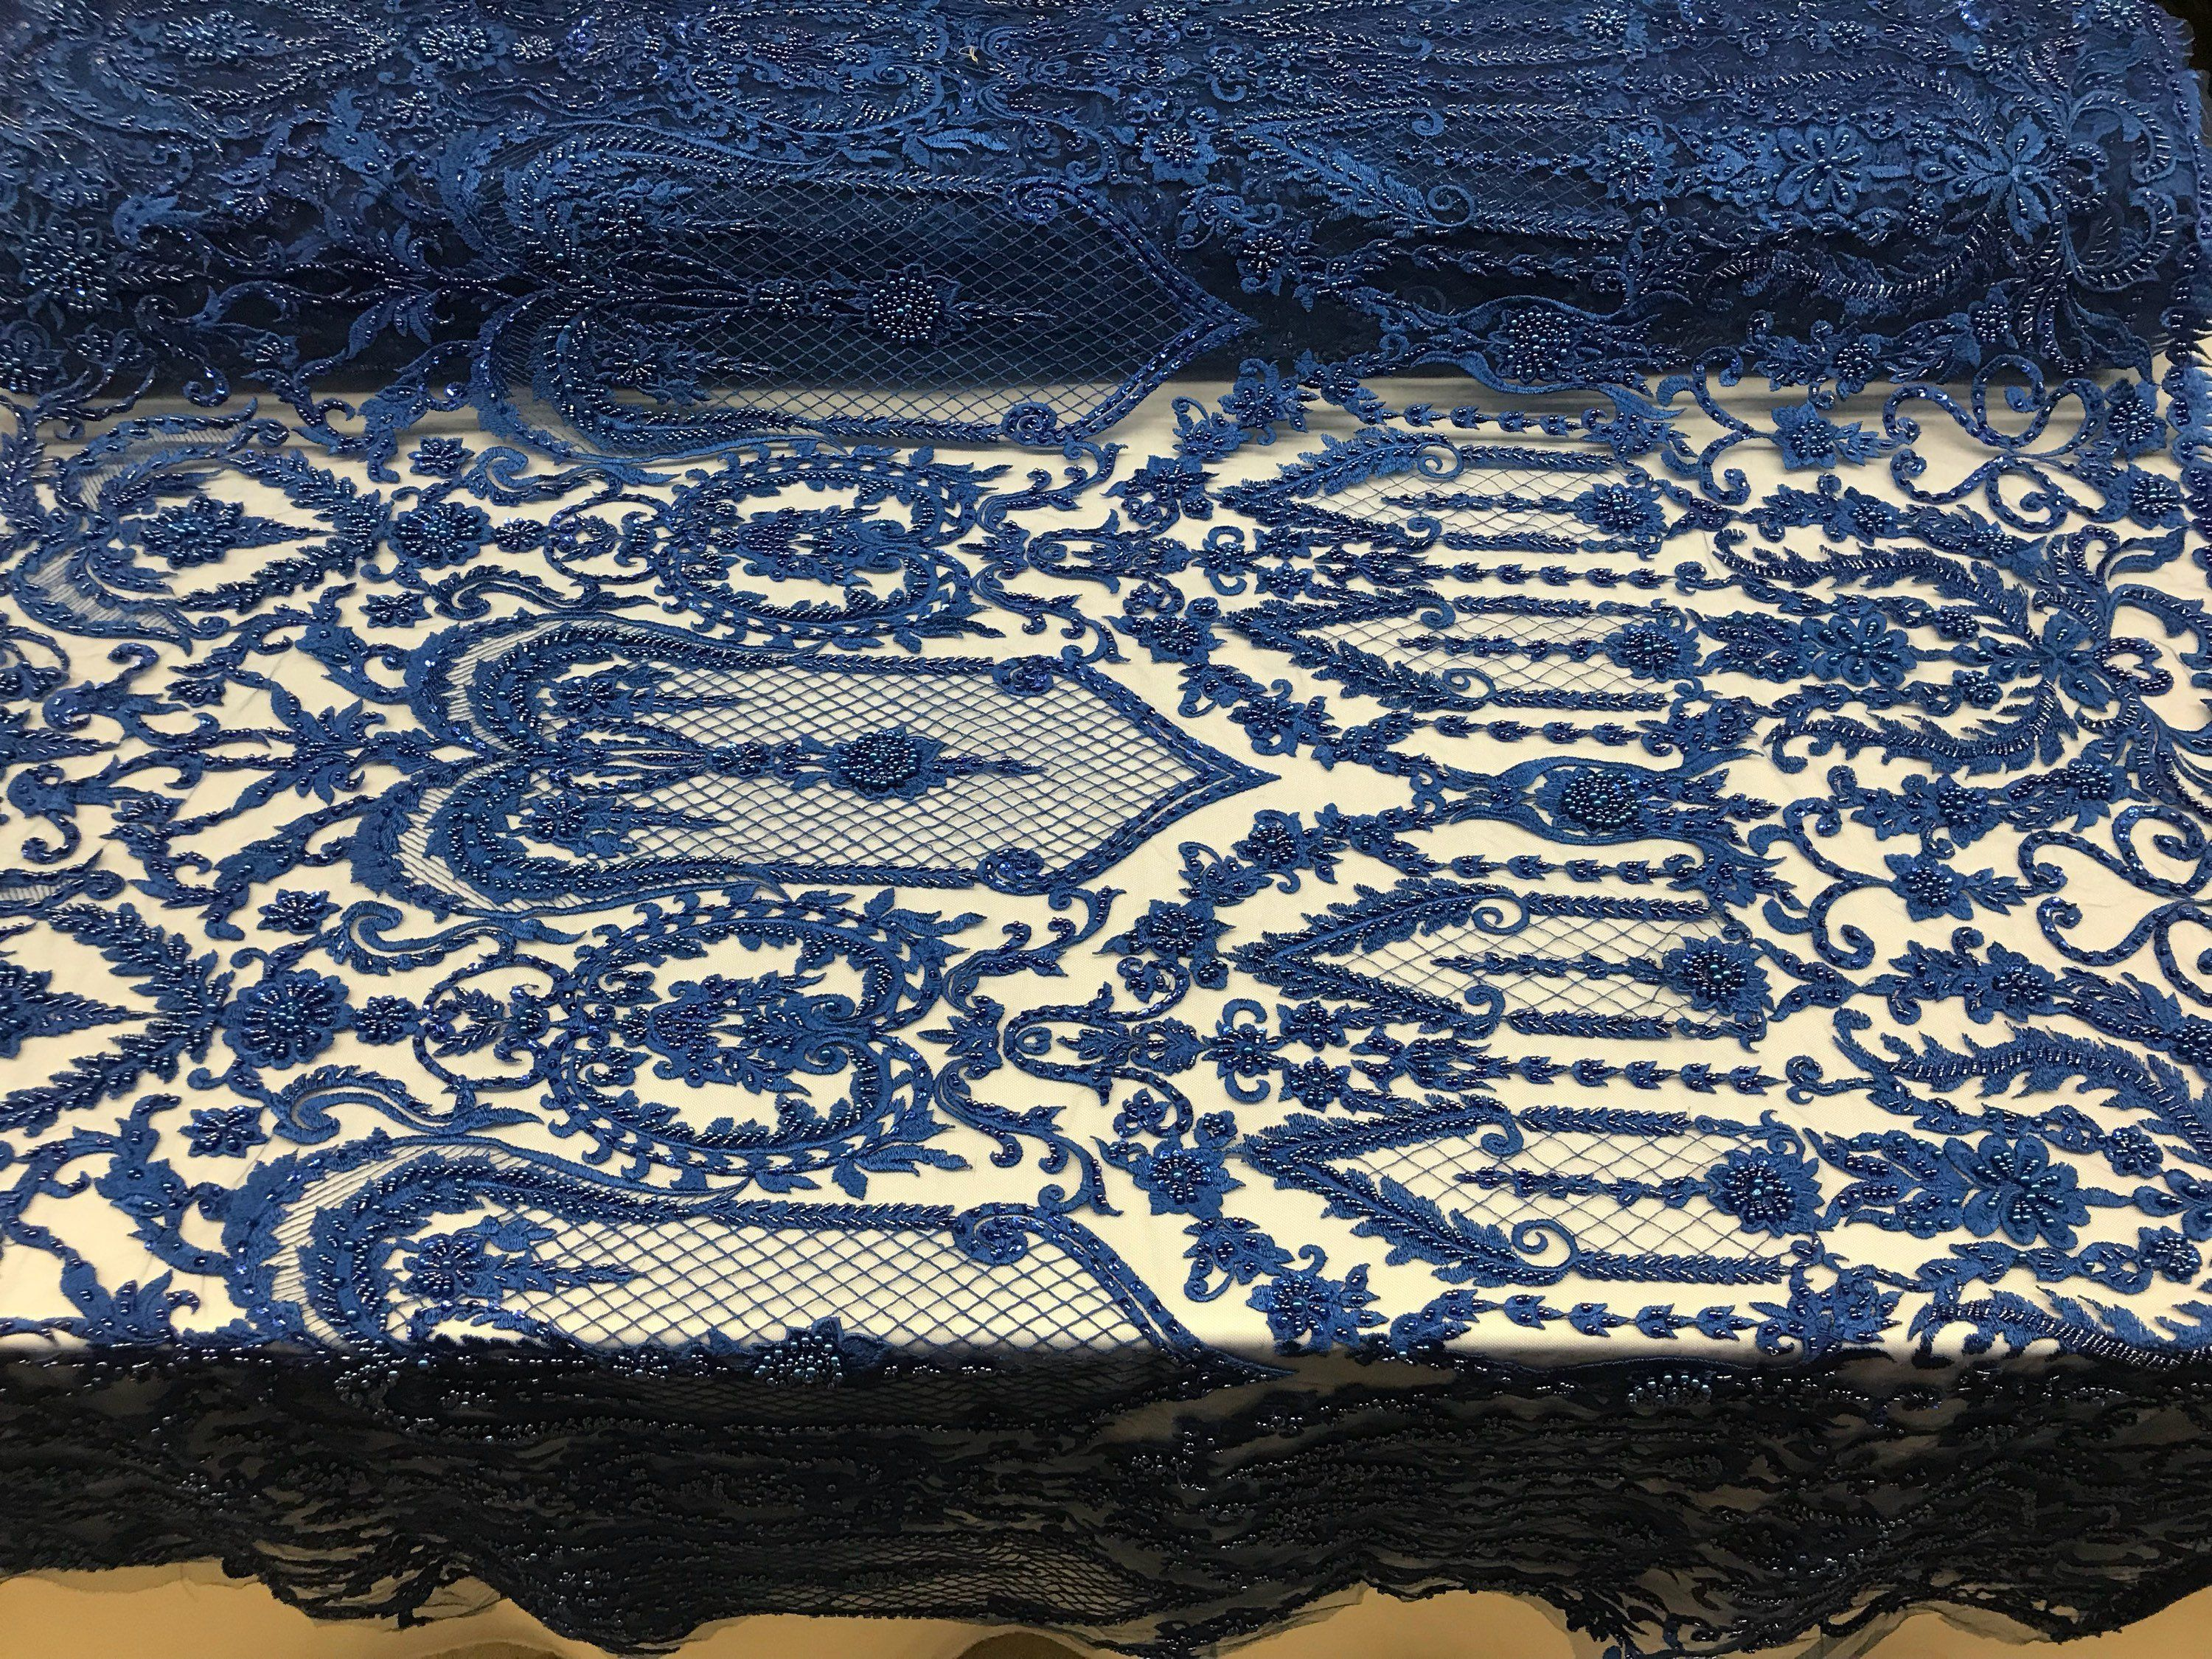 Beaded fabric by the yard royal blue lace heavy beads for bridal